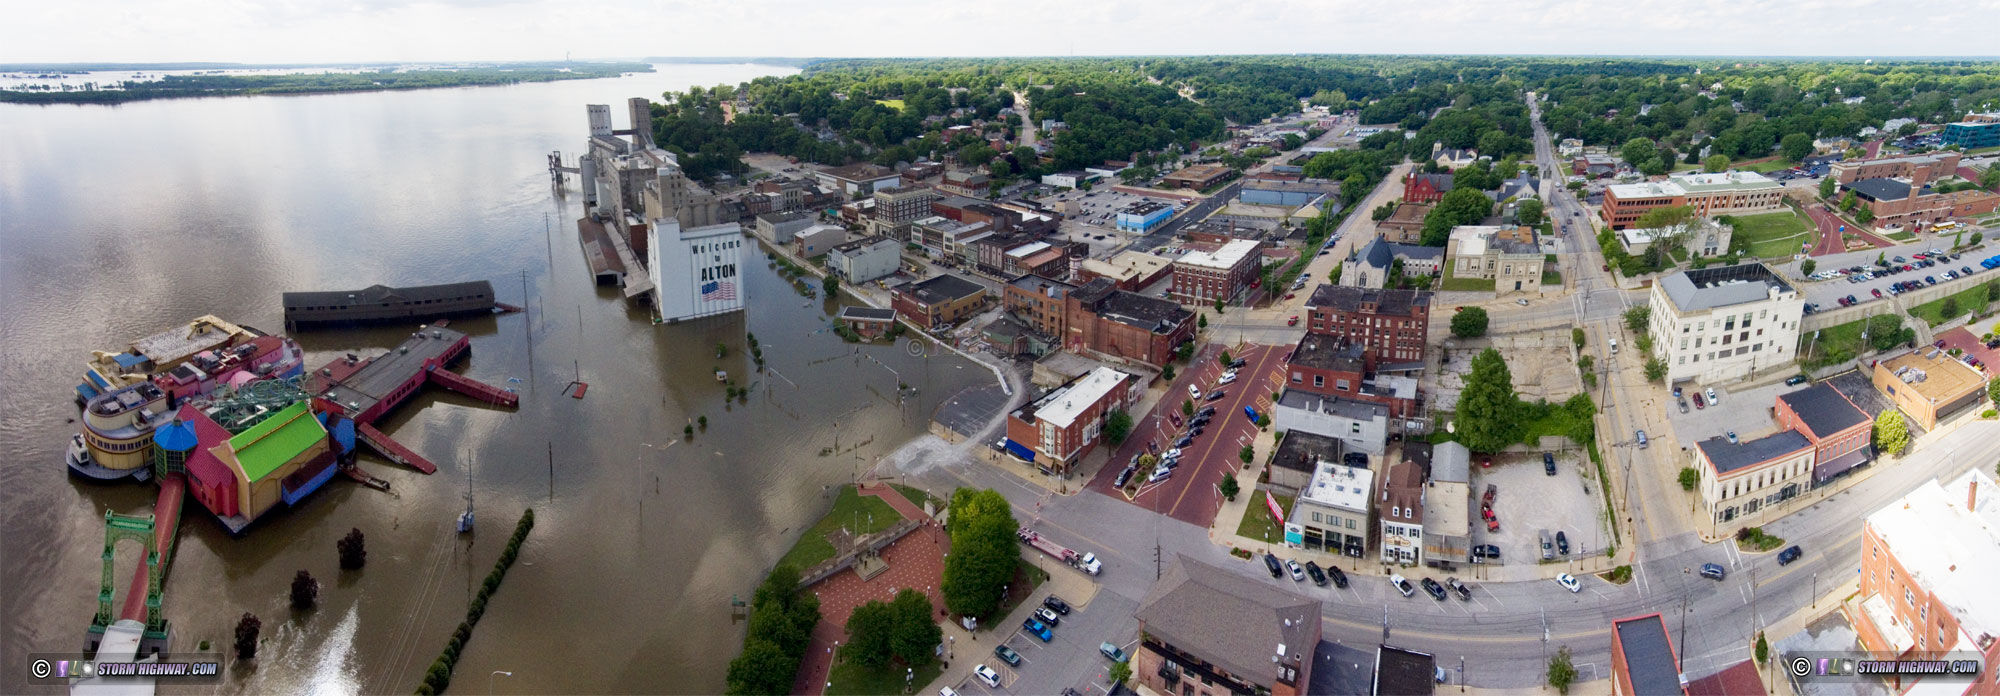 Alton, IL flood 2019